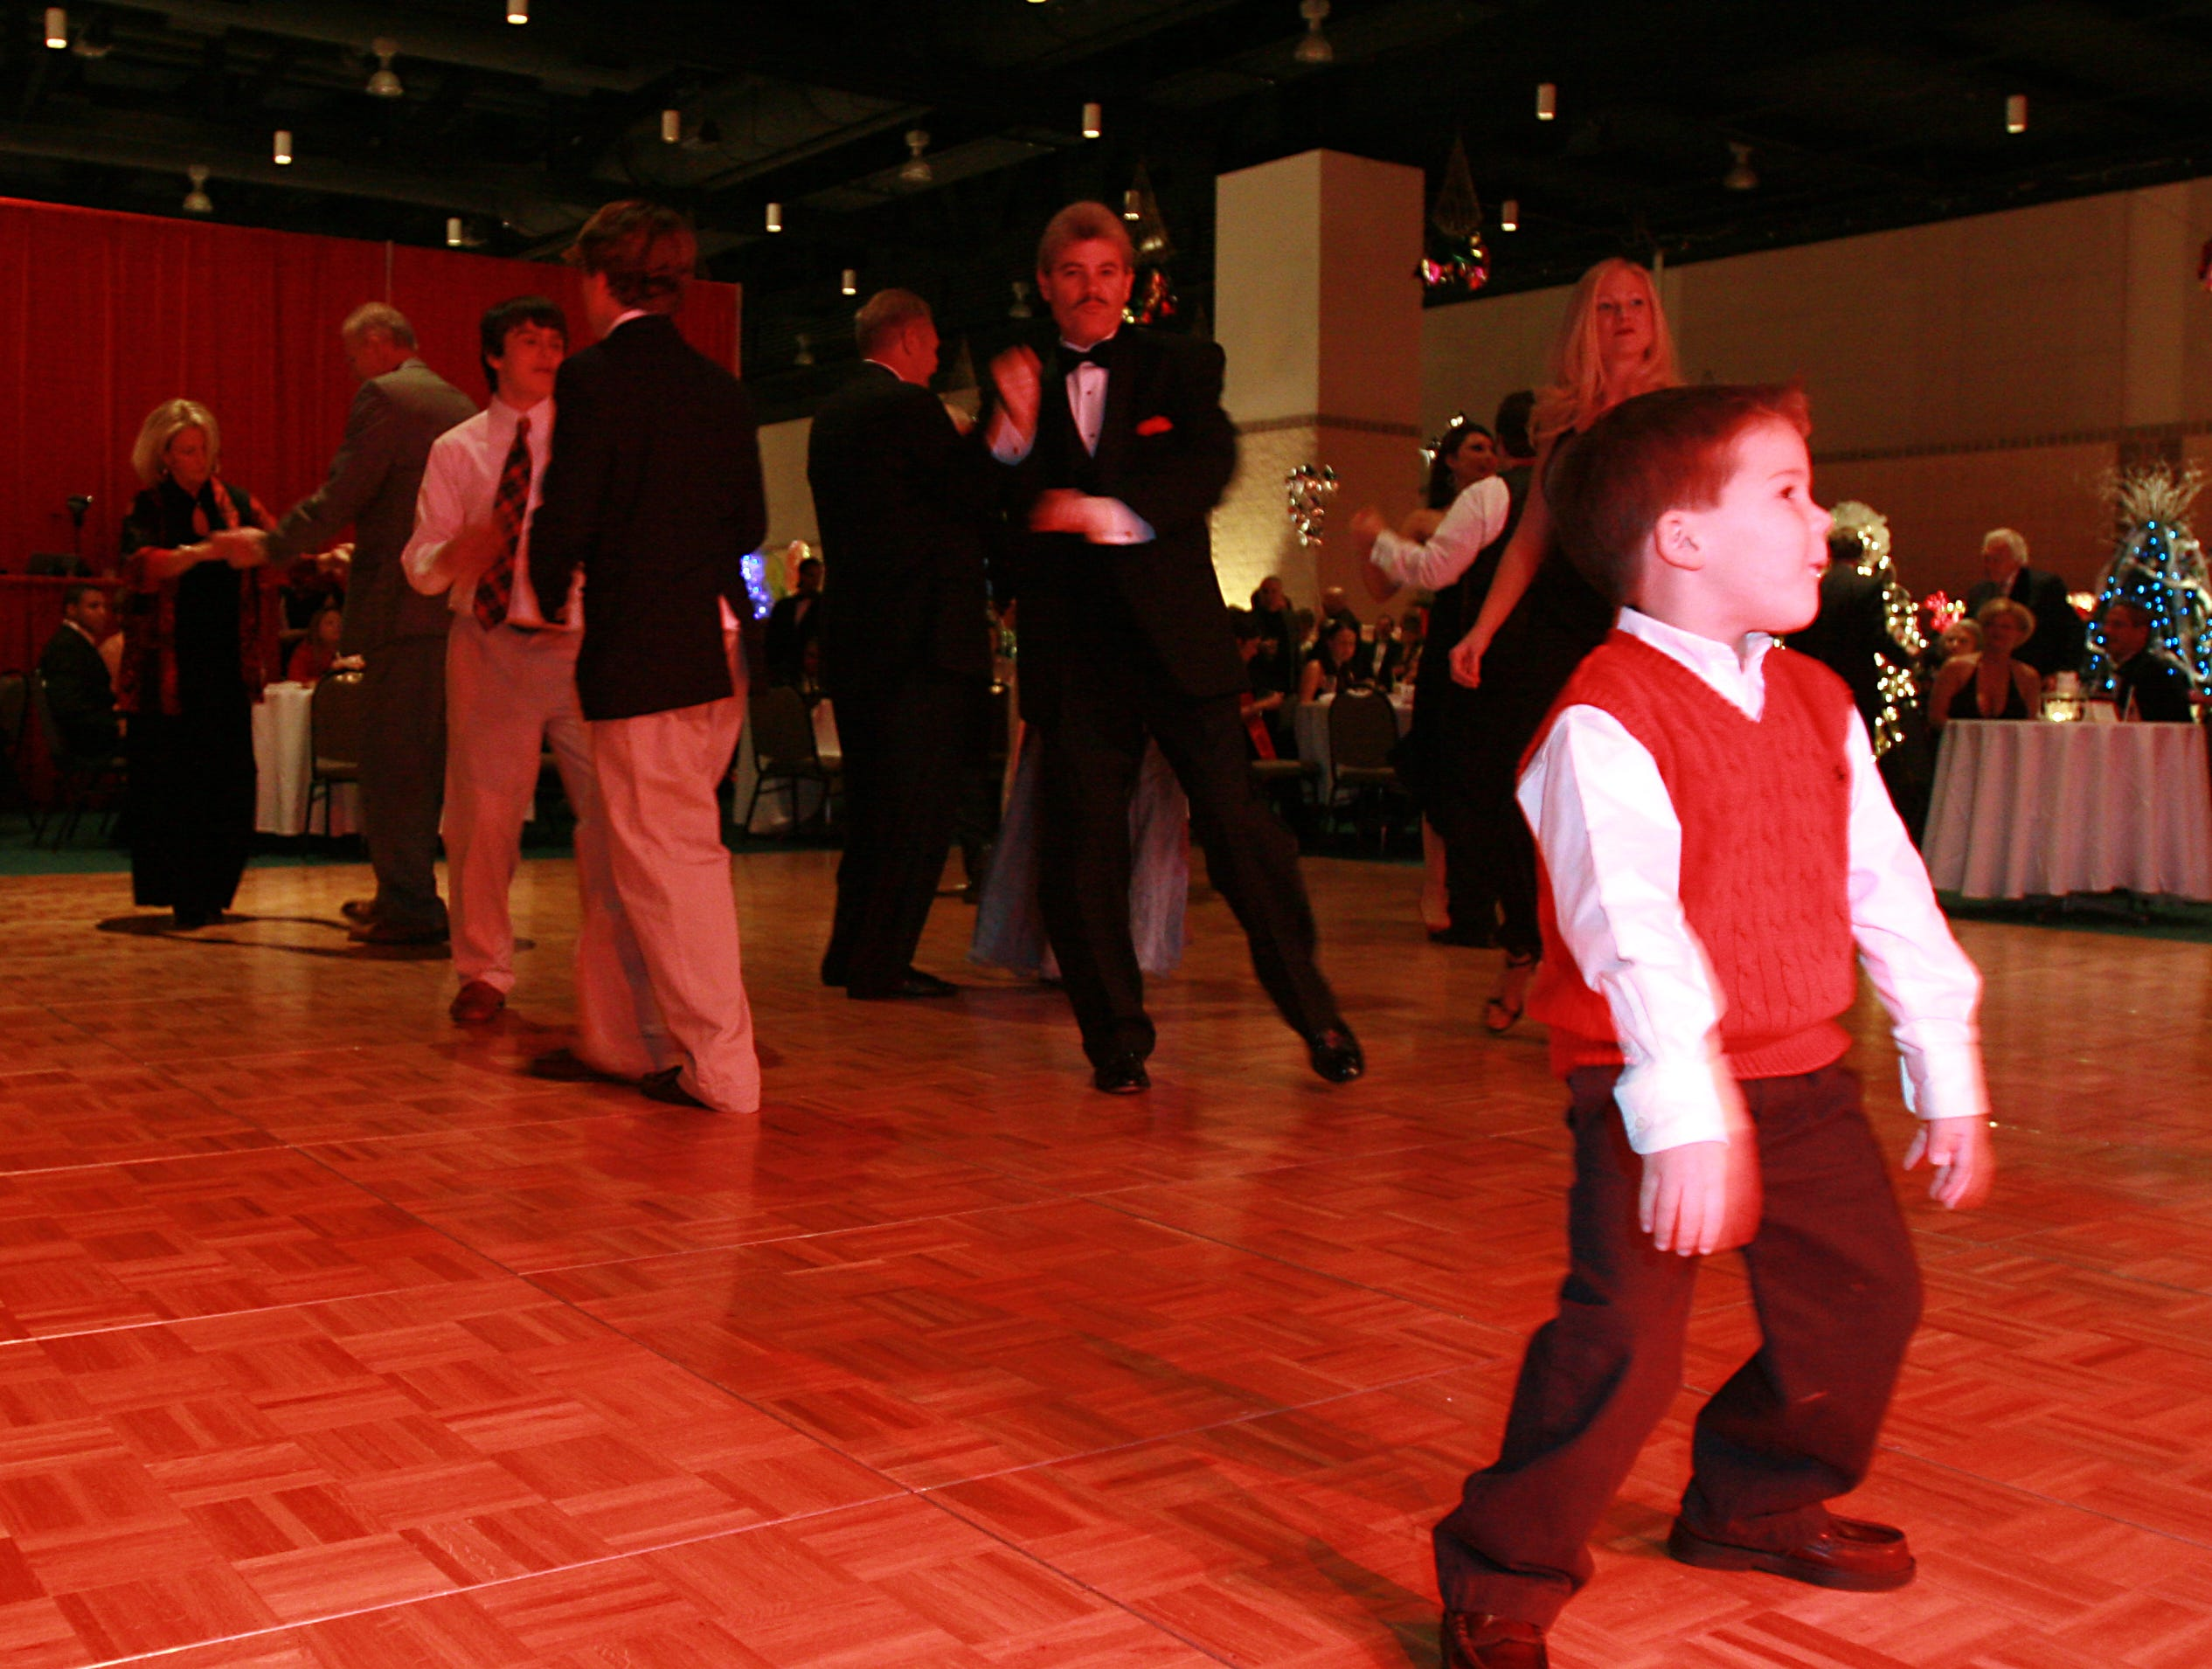 1126peop4.BC#6768--LIVING--Patrick Boles (5) along with parents Debbie and Pat Boles (Not Pictured) gets down on the dance floor at the Knoxville Convention Center on Tuesday, November 21.  The Convention Center hosted the Fantasy of Trees opening Gala to benefit Children's Hospital.  (Bryan Campbell/ Special to the News Sentinel)